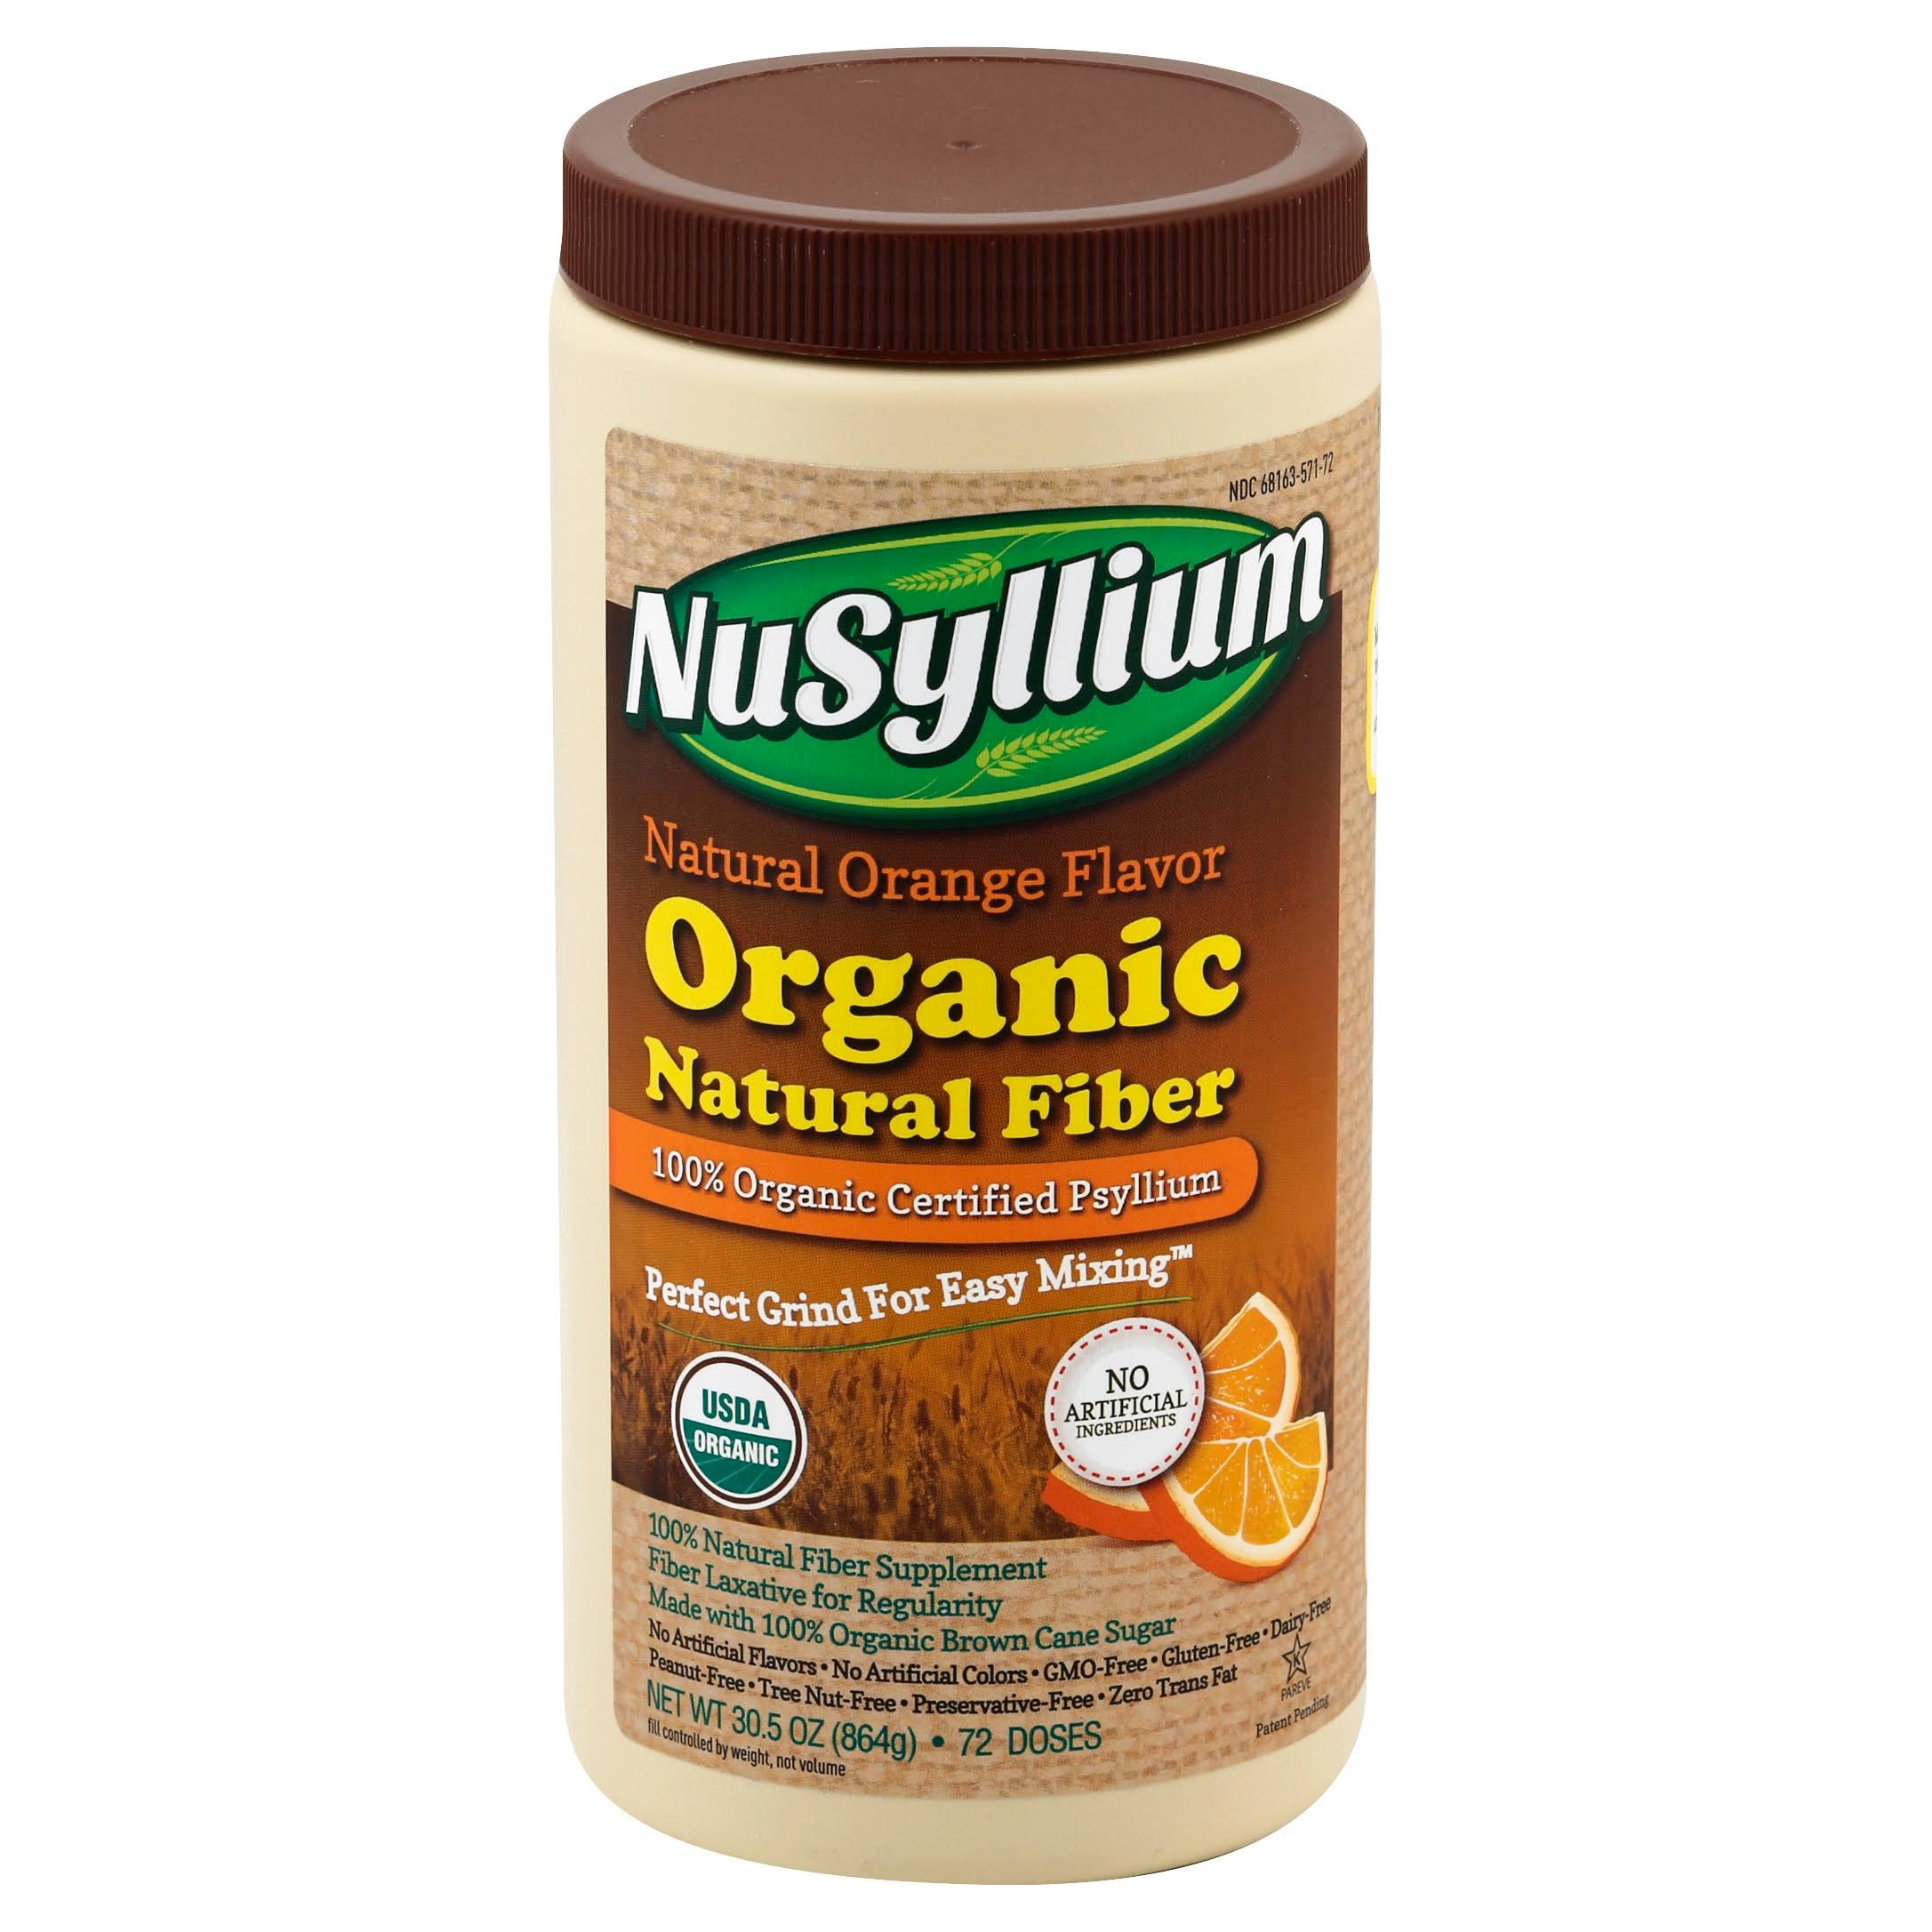 Nusyllium Organic Fiber Supplement - Natural Orange, 30oz